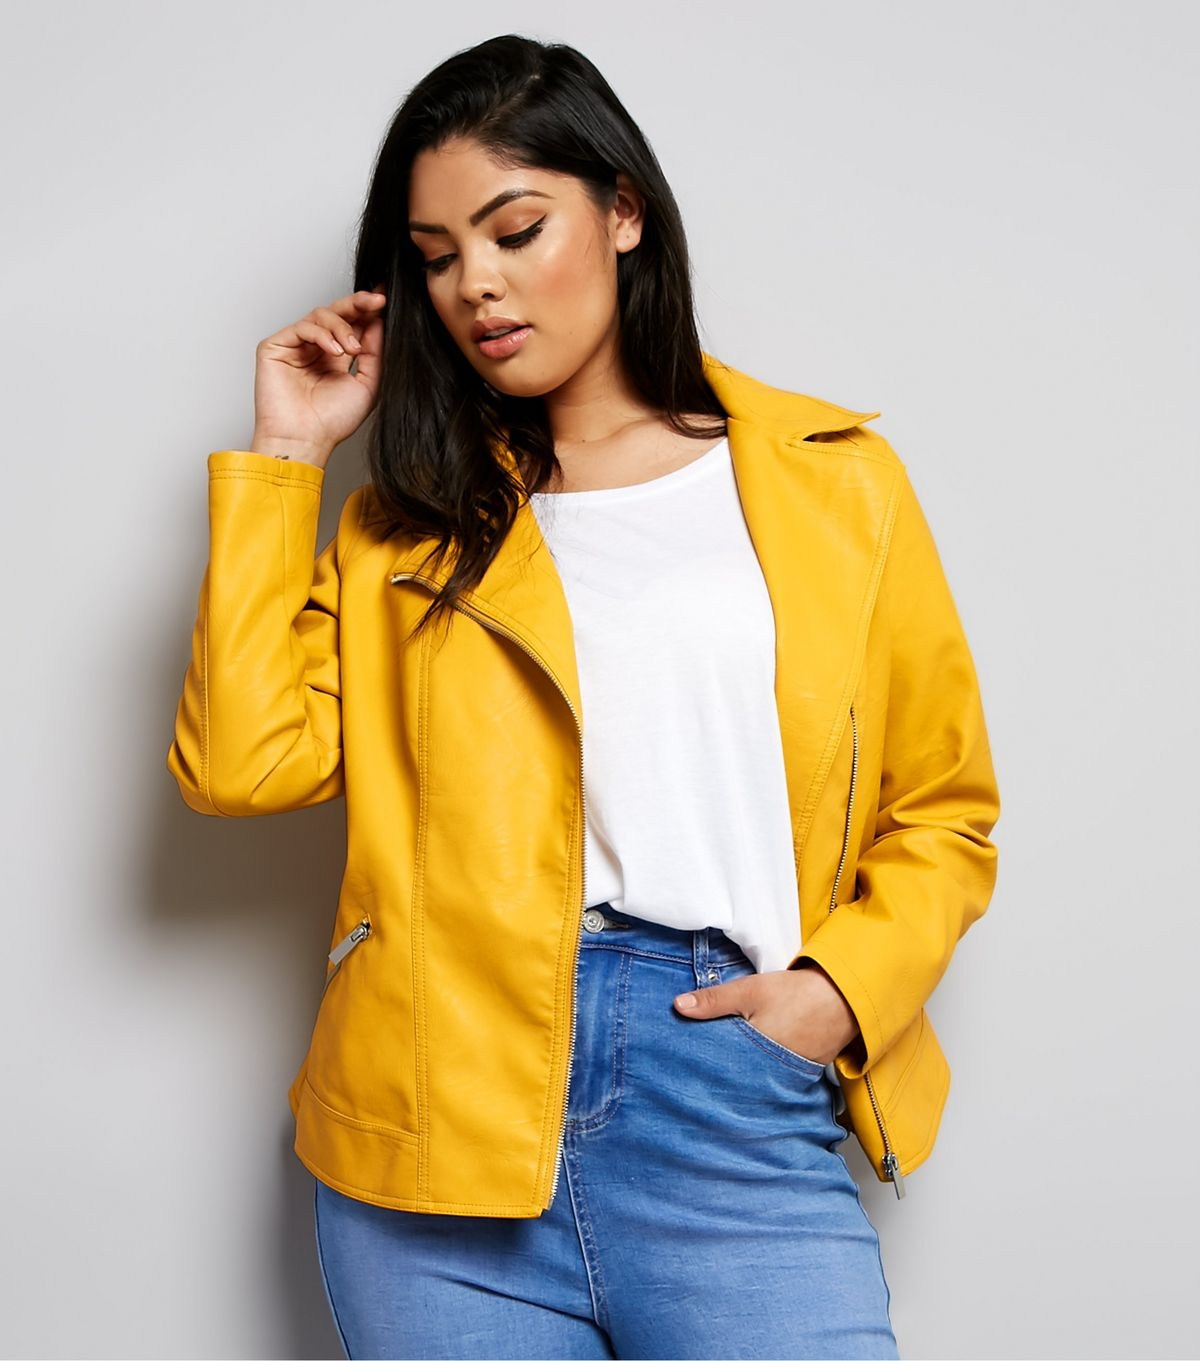 e7ff95d09ea42 New Look Curves Yellow Leather-Look Biker Jacket £39.99